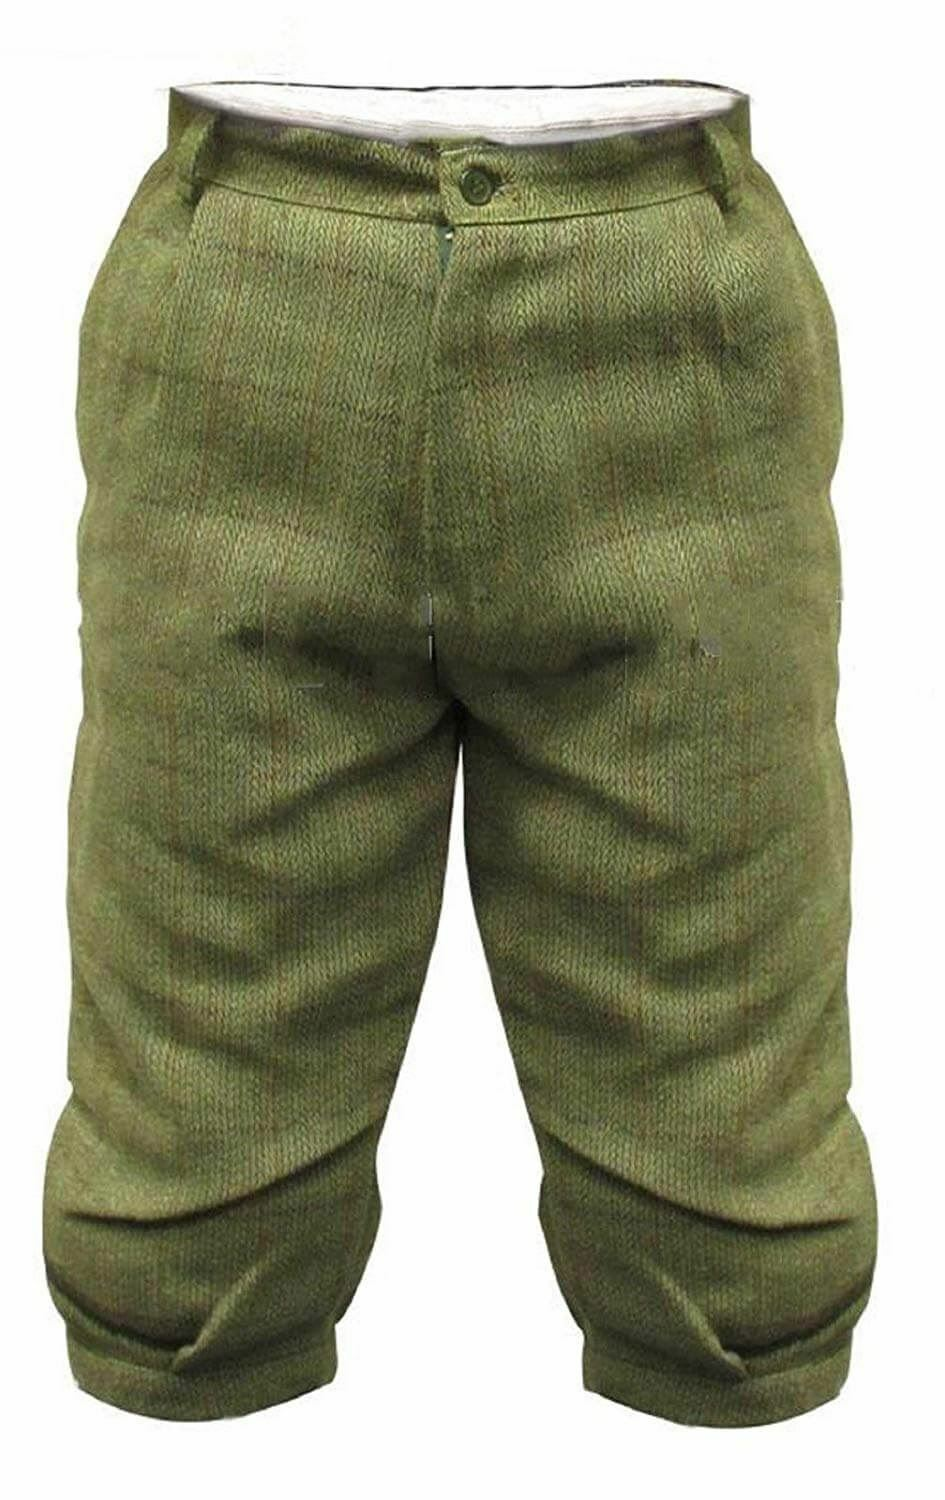 HSF Hereford Tweed Breeks- Sage